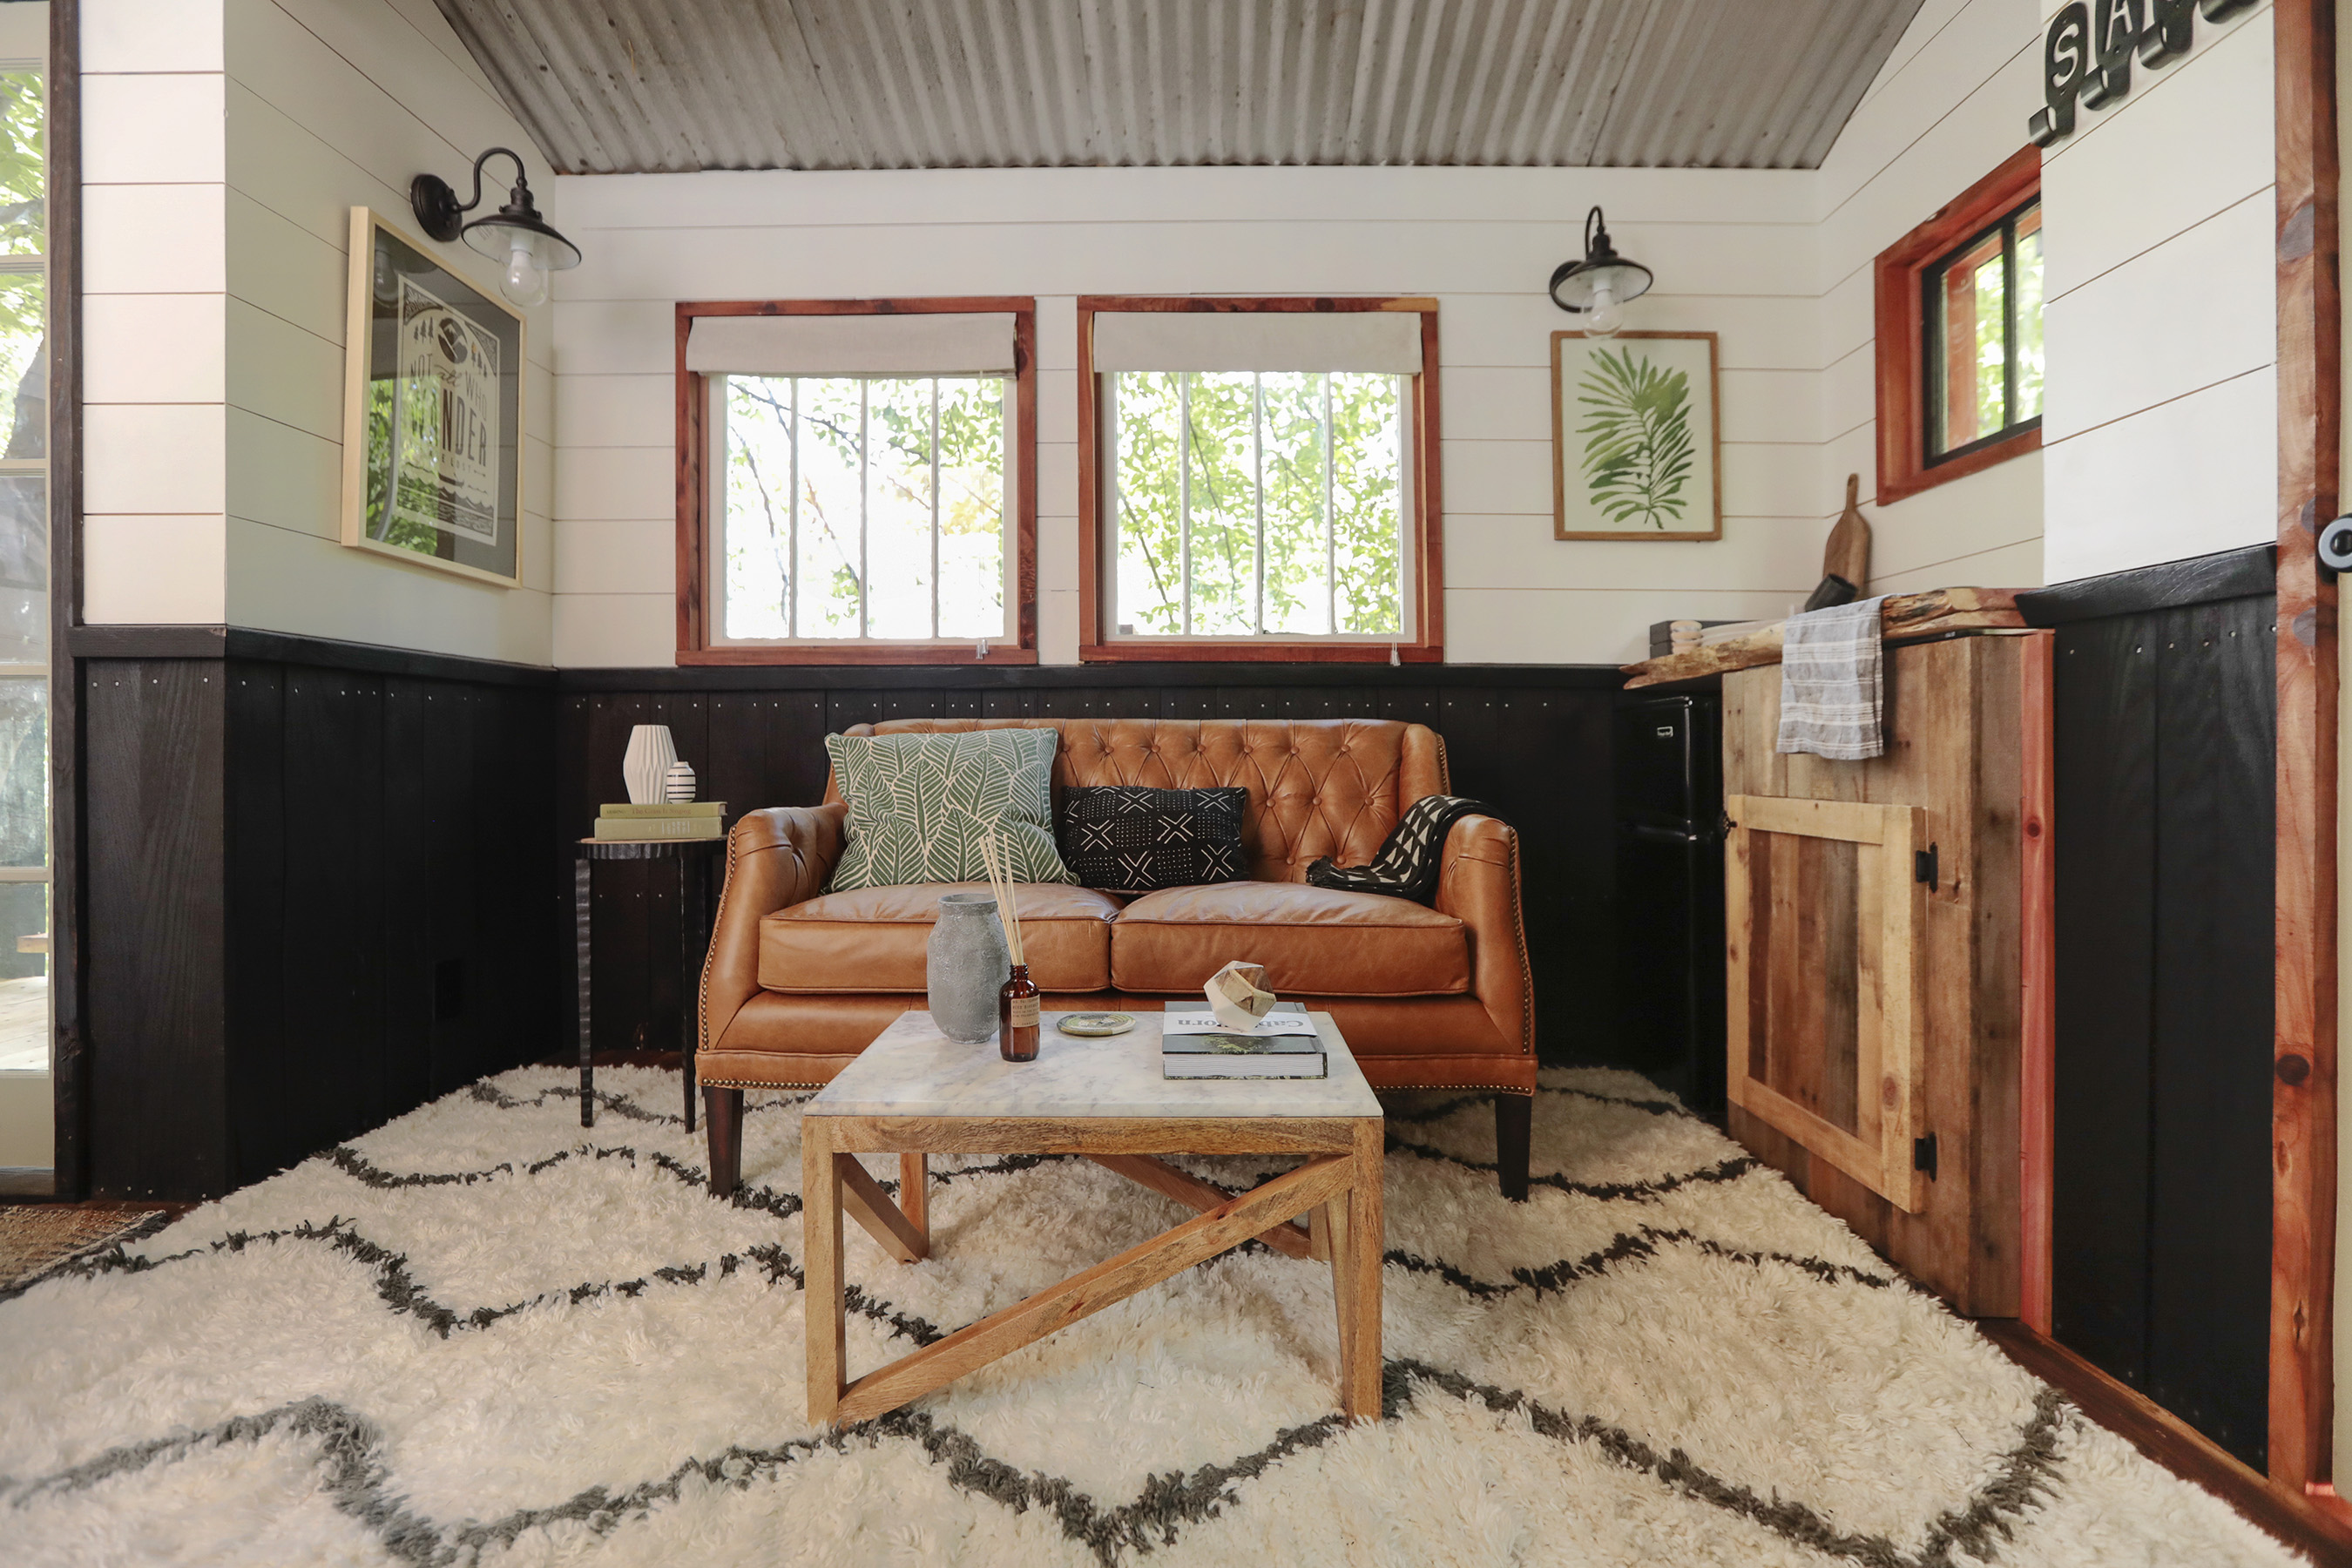 The interior of the Dove Men+Care Elements Treehouse was curated by Will Taylor of Bright Bazaar, featuring a rustic design with modern amenities and accents that nod to the nature-inspired ingredients from the Elements product range.